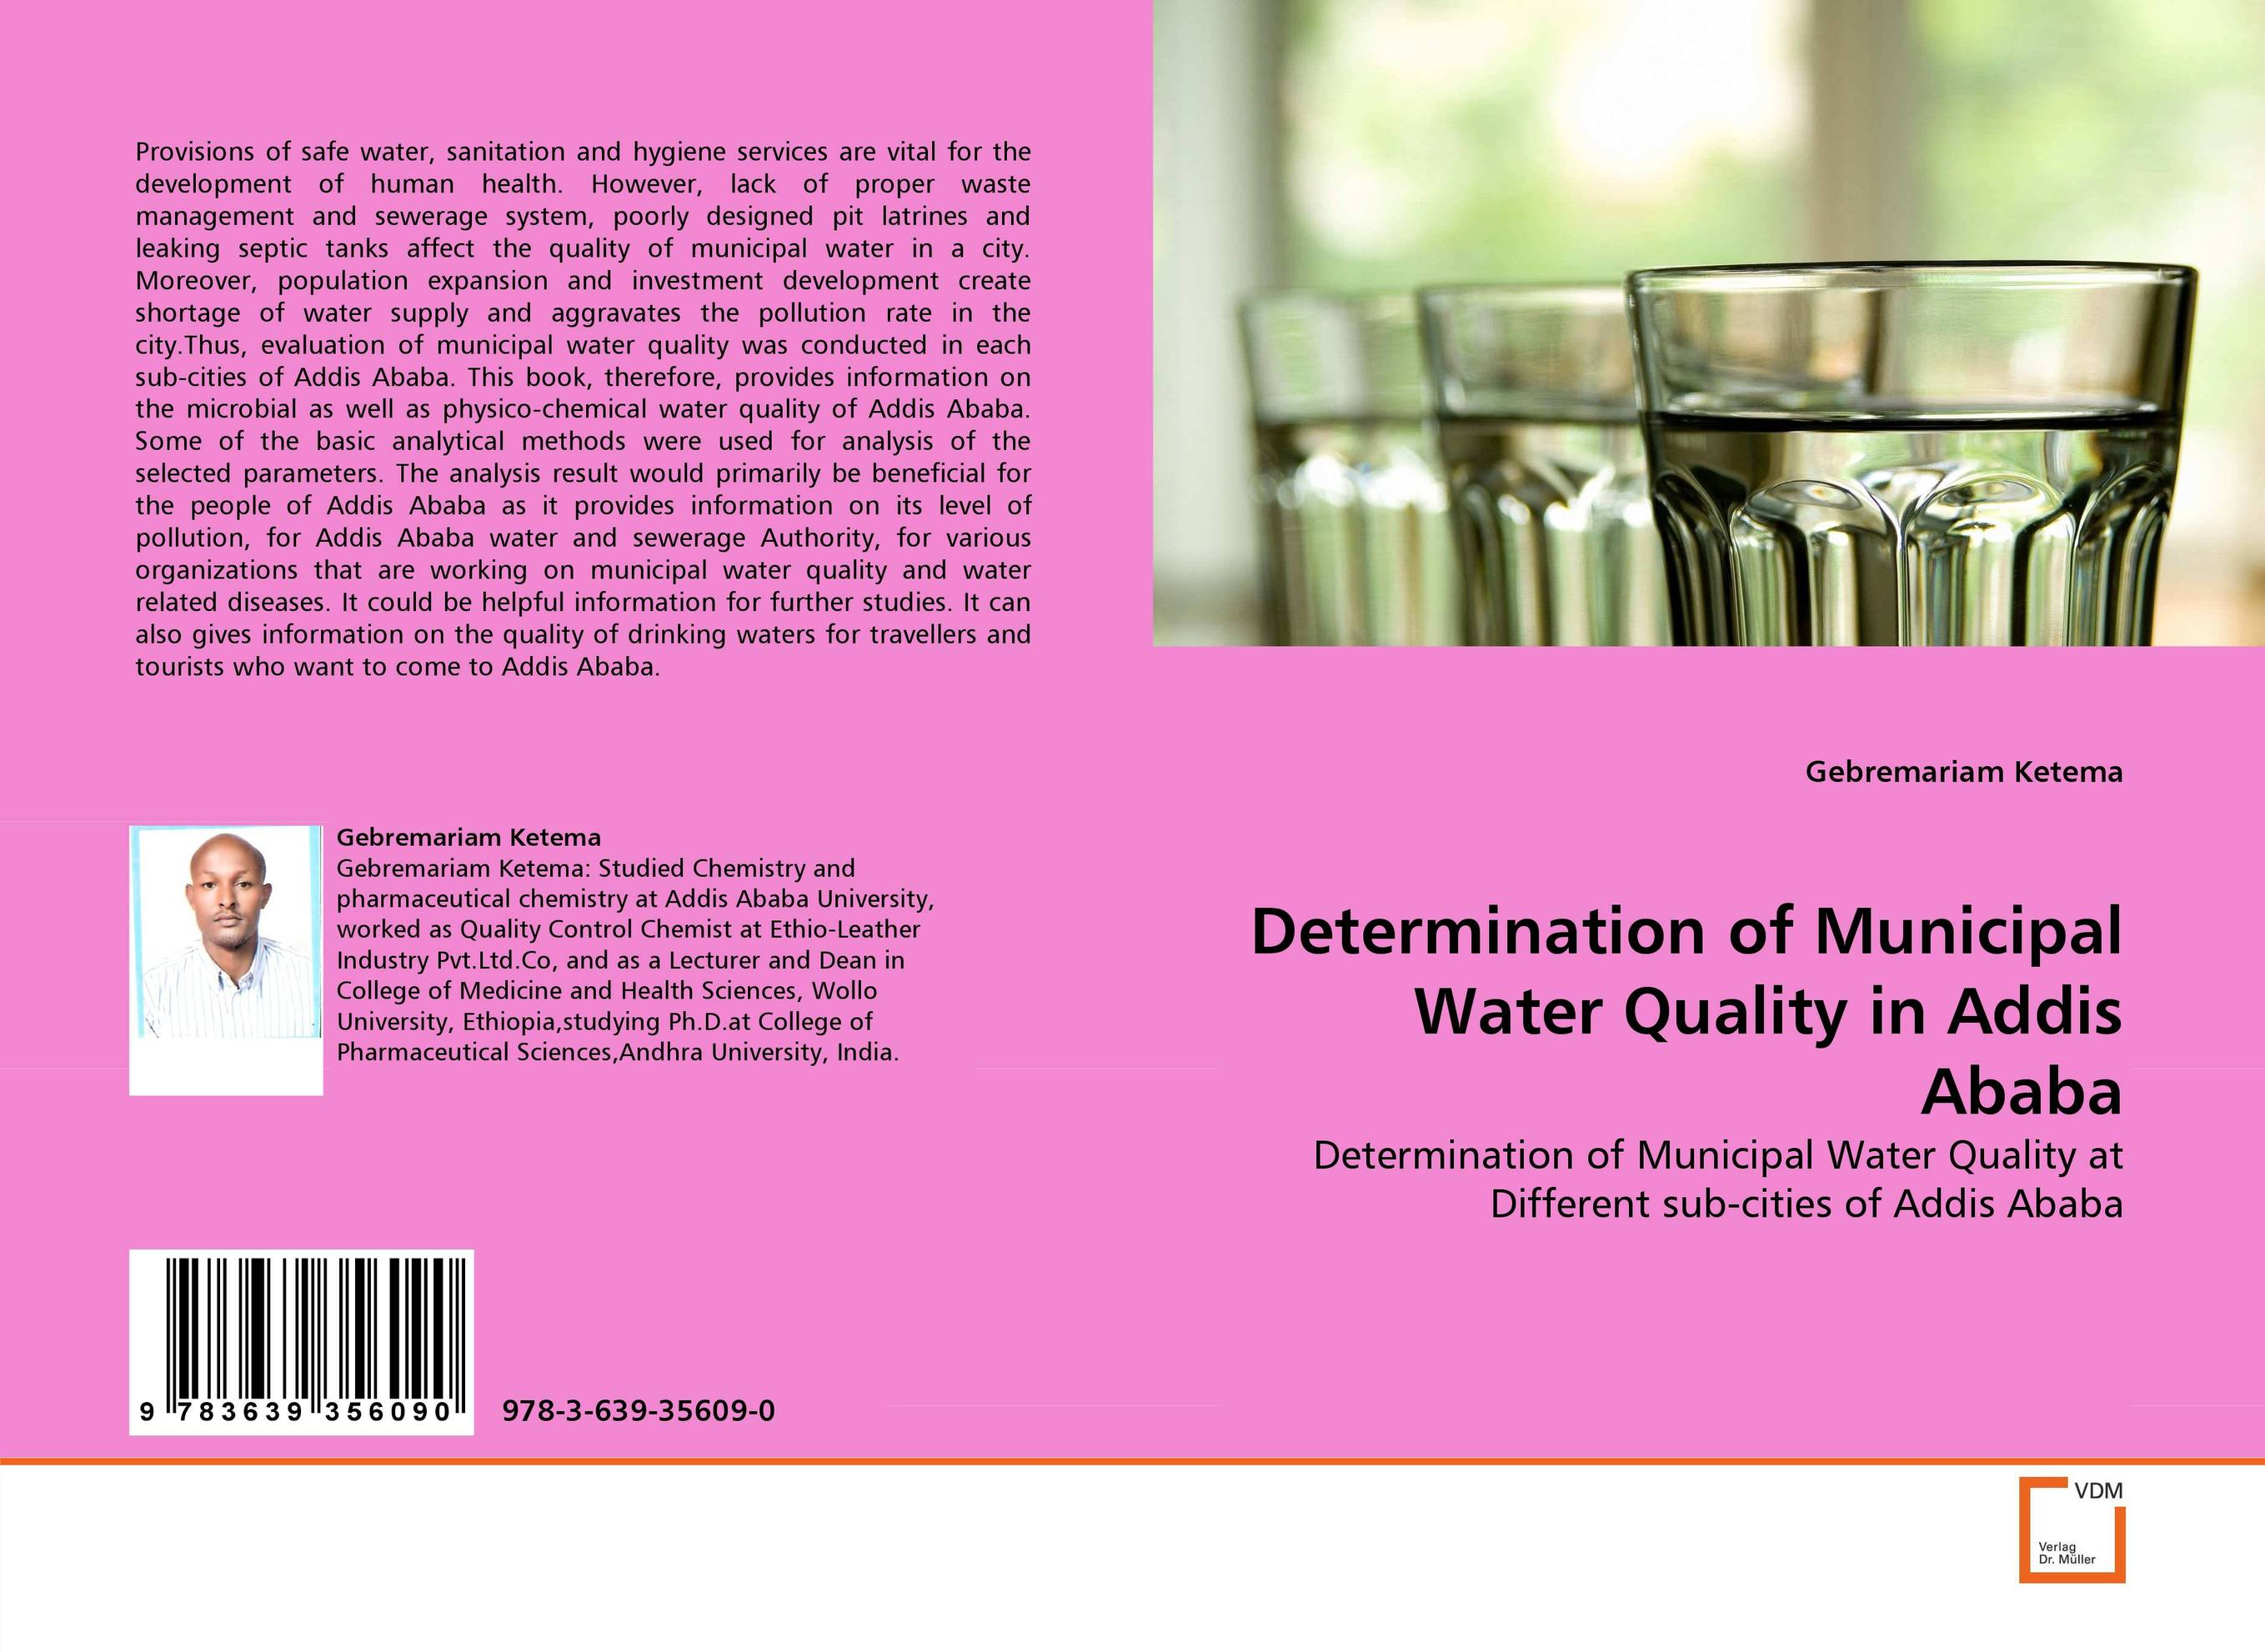 Determination of Municipal Water Quality in Addis Ababa thermo operated water valves can be used in food processing equipments biomass boilers and hydraulic systems